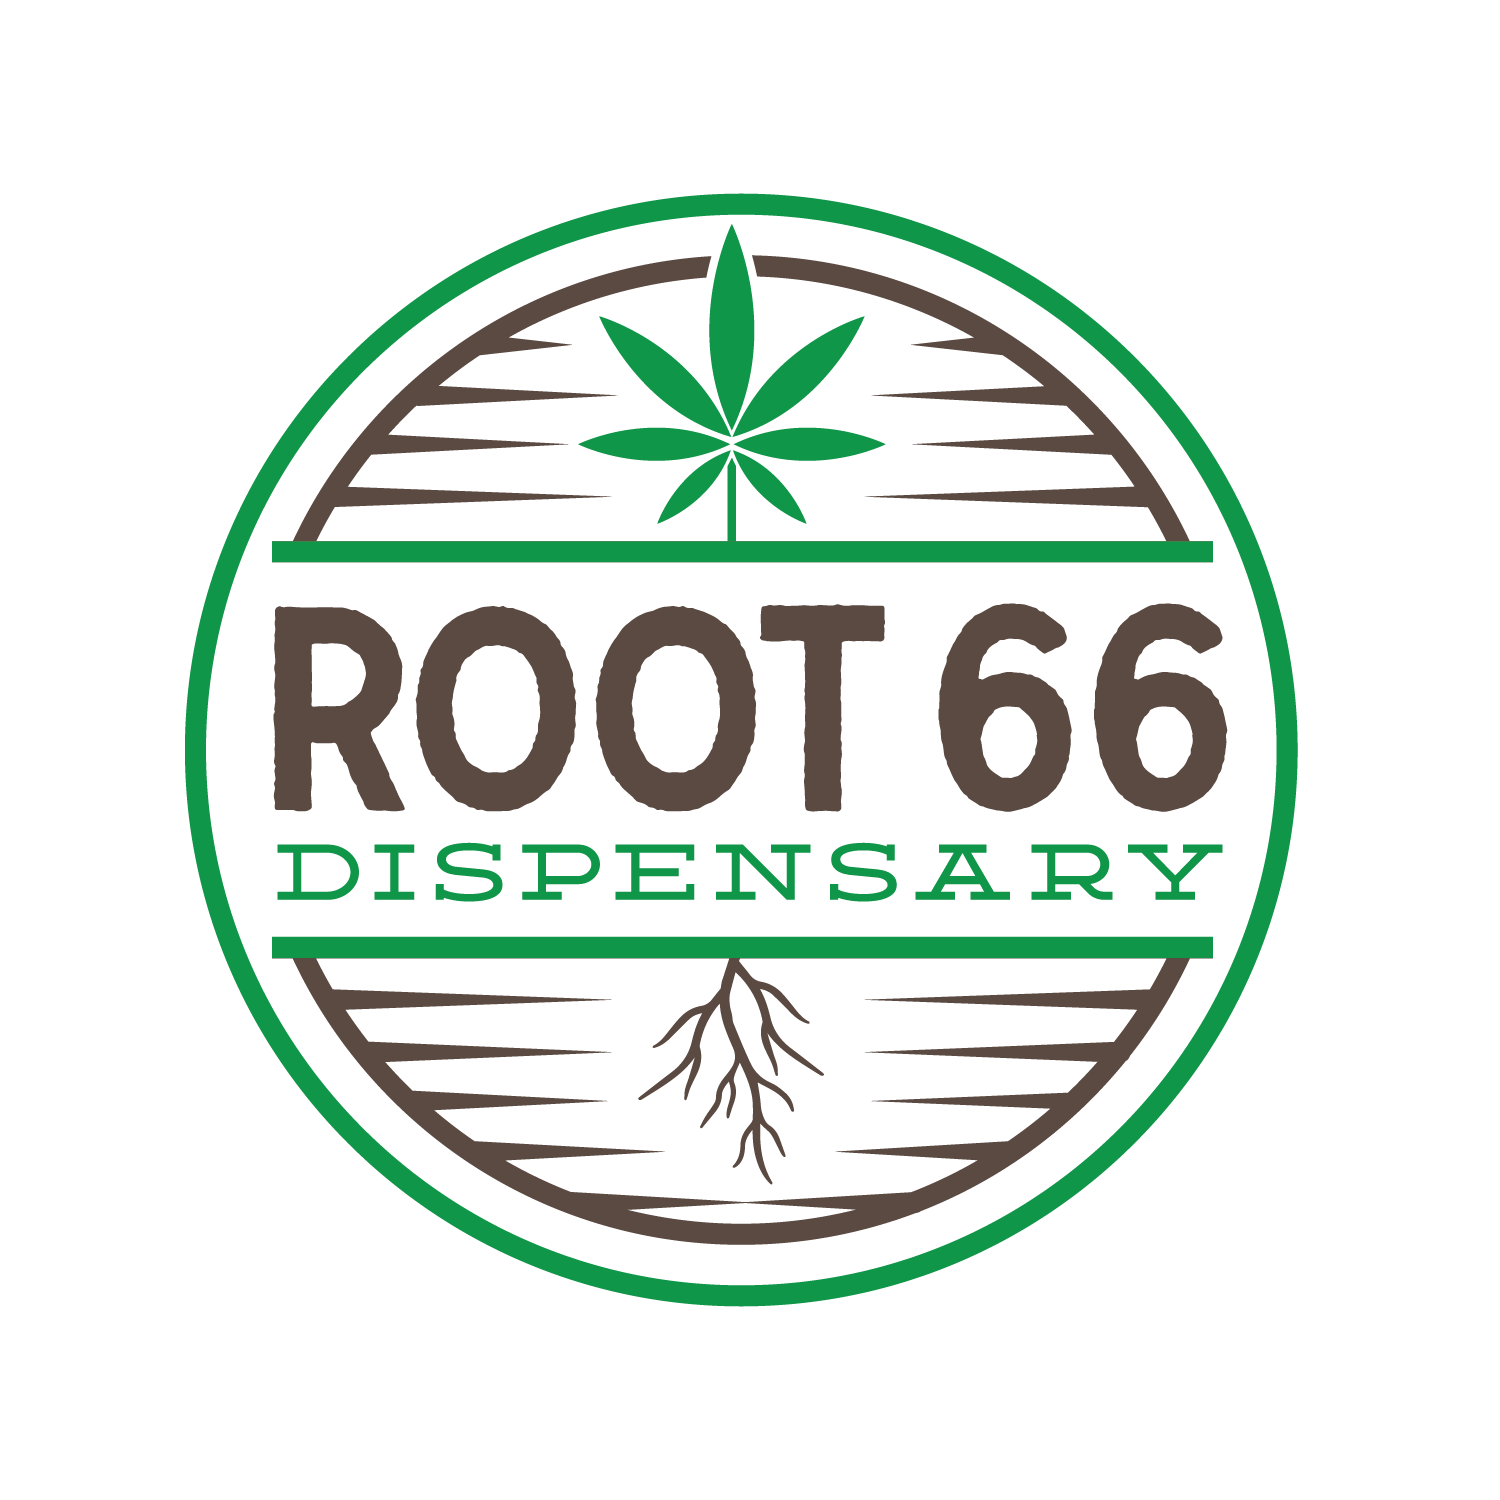 Root 66 Dispenary